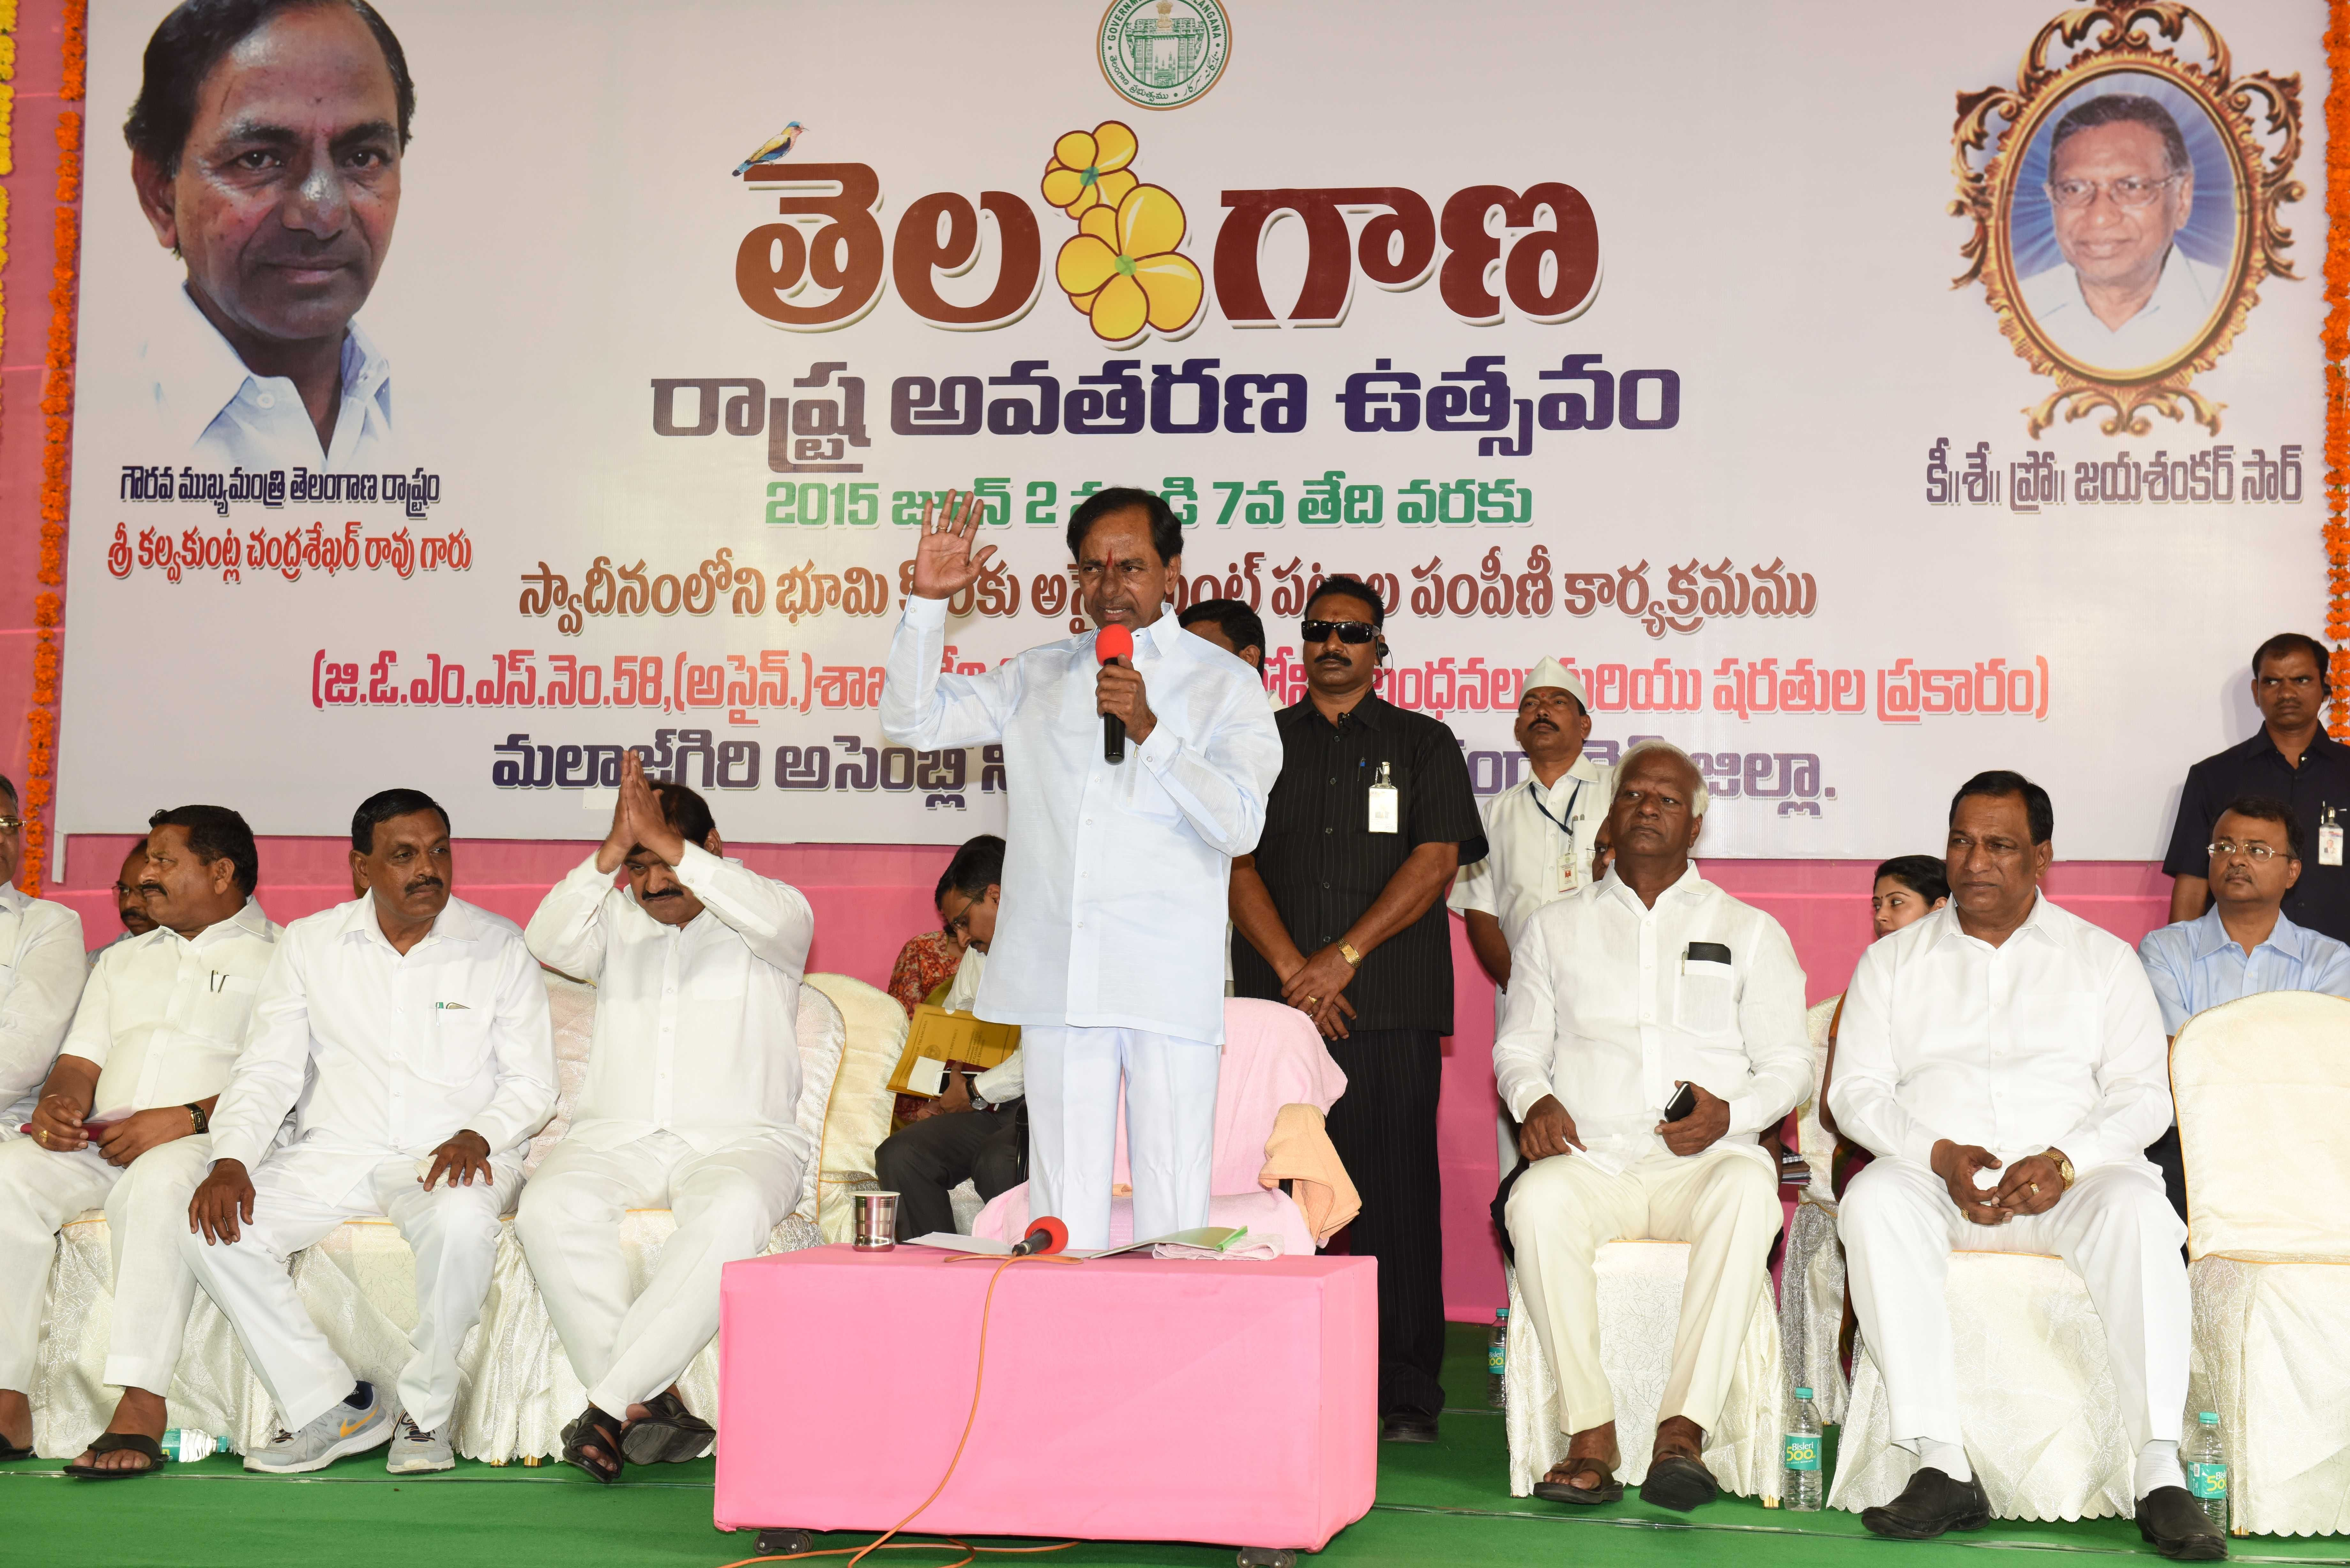 Telangana Chief Minister K.Chandrashekar Rao Distributed  Land patta certificates at Malkajgiri on 5.6.2015